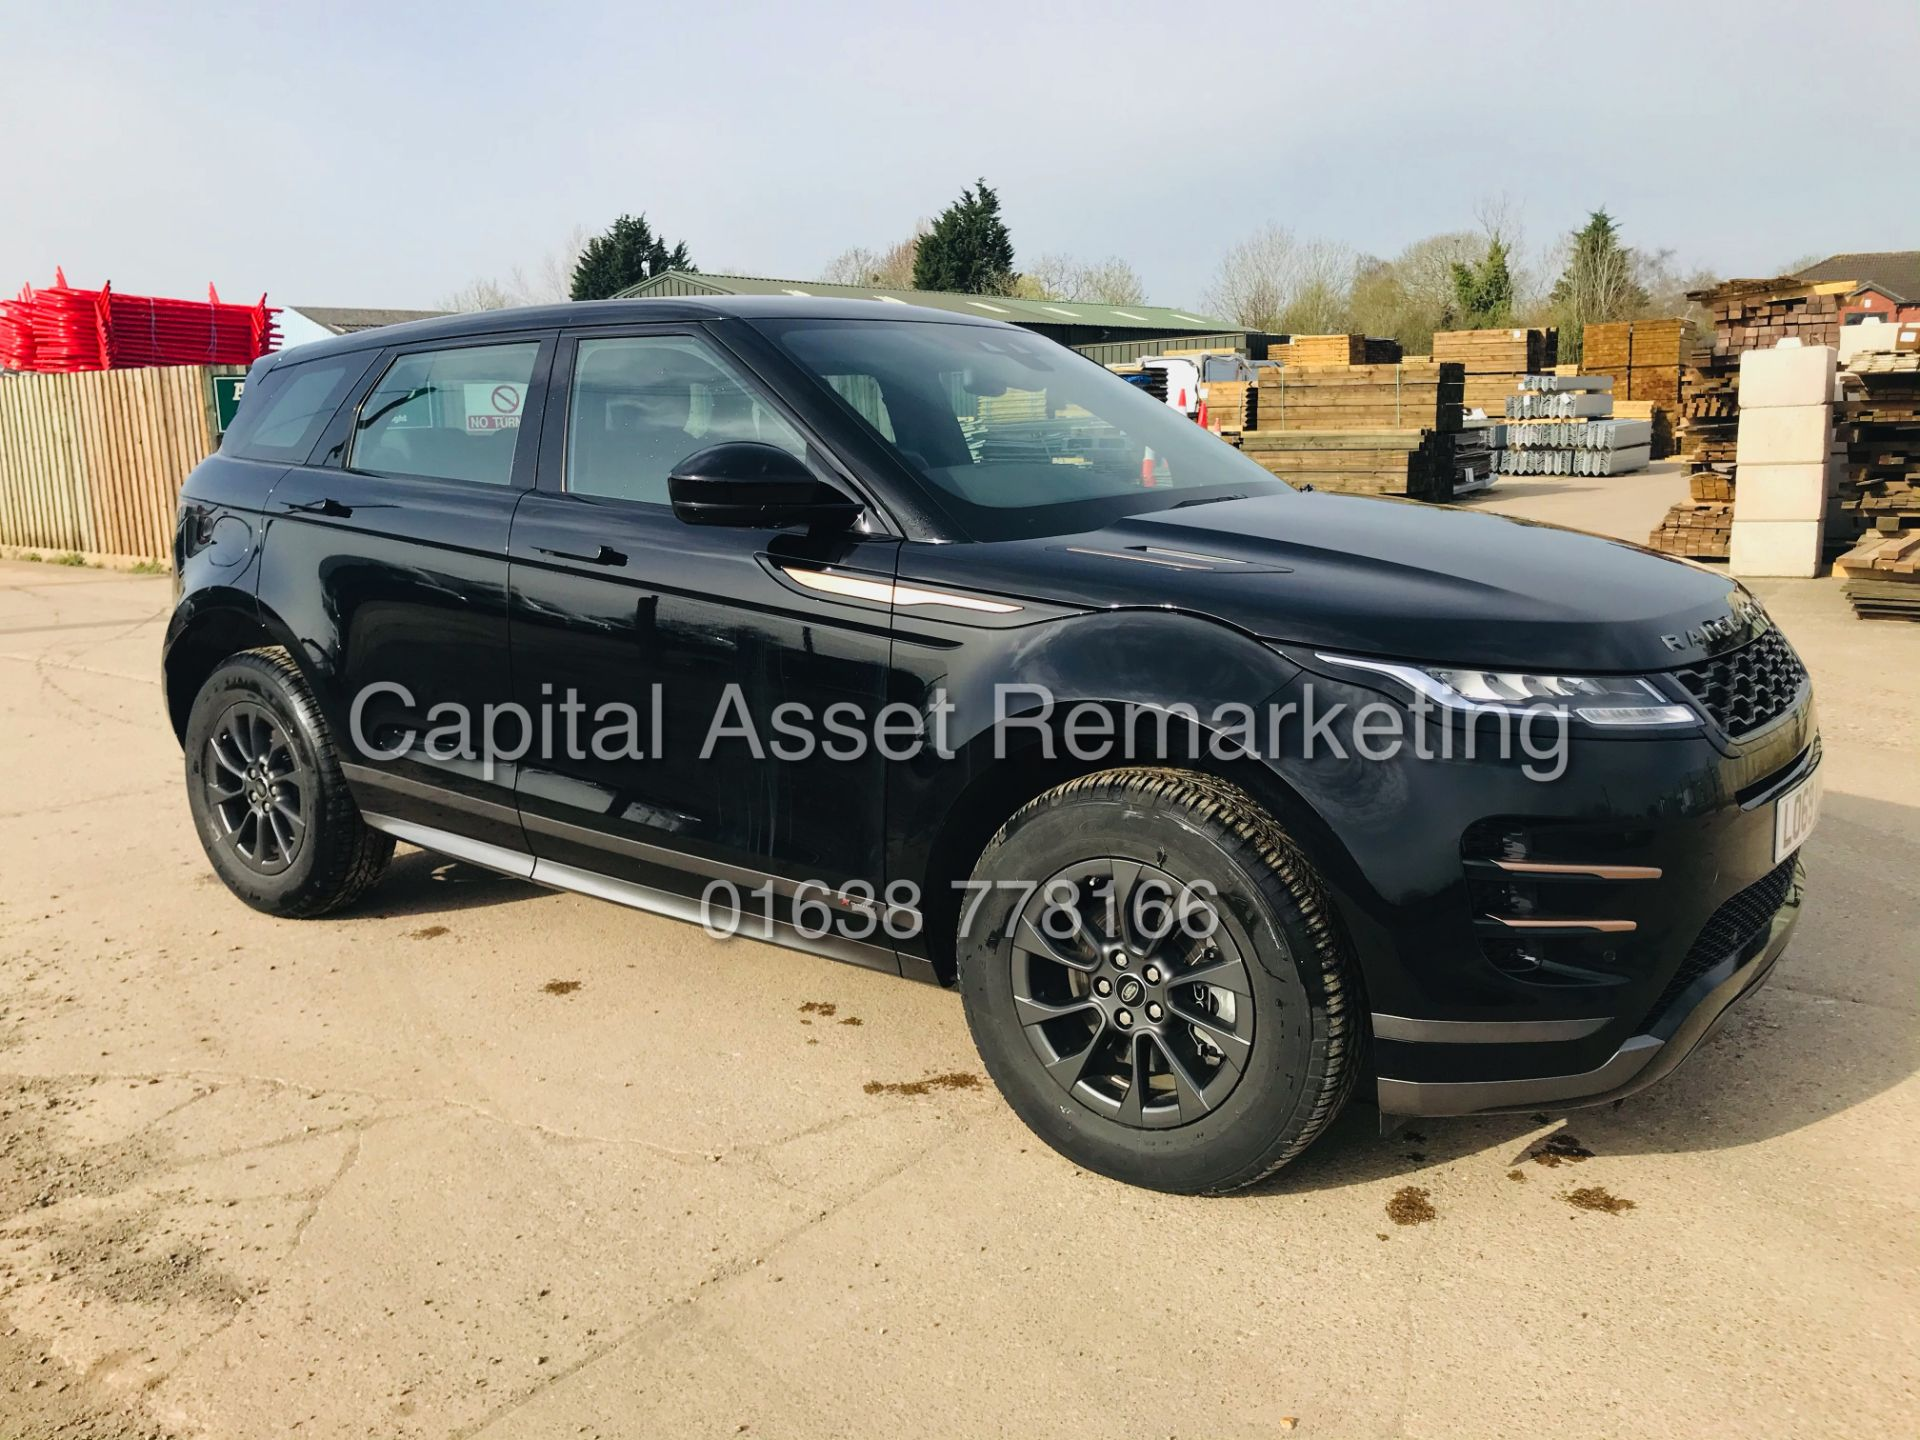 "(On Sale) RANGE ROVER EVOQUE R-DYNAMIC 2.0 D150 ""BLACK EDITION"" (2020) GREAT SPEC - ONLY 4500 MILES - Image 2 of 26"